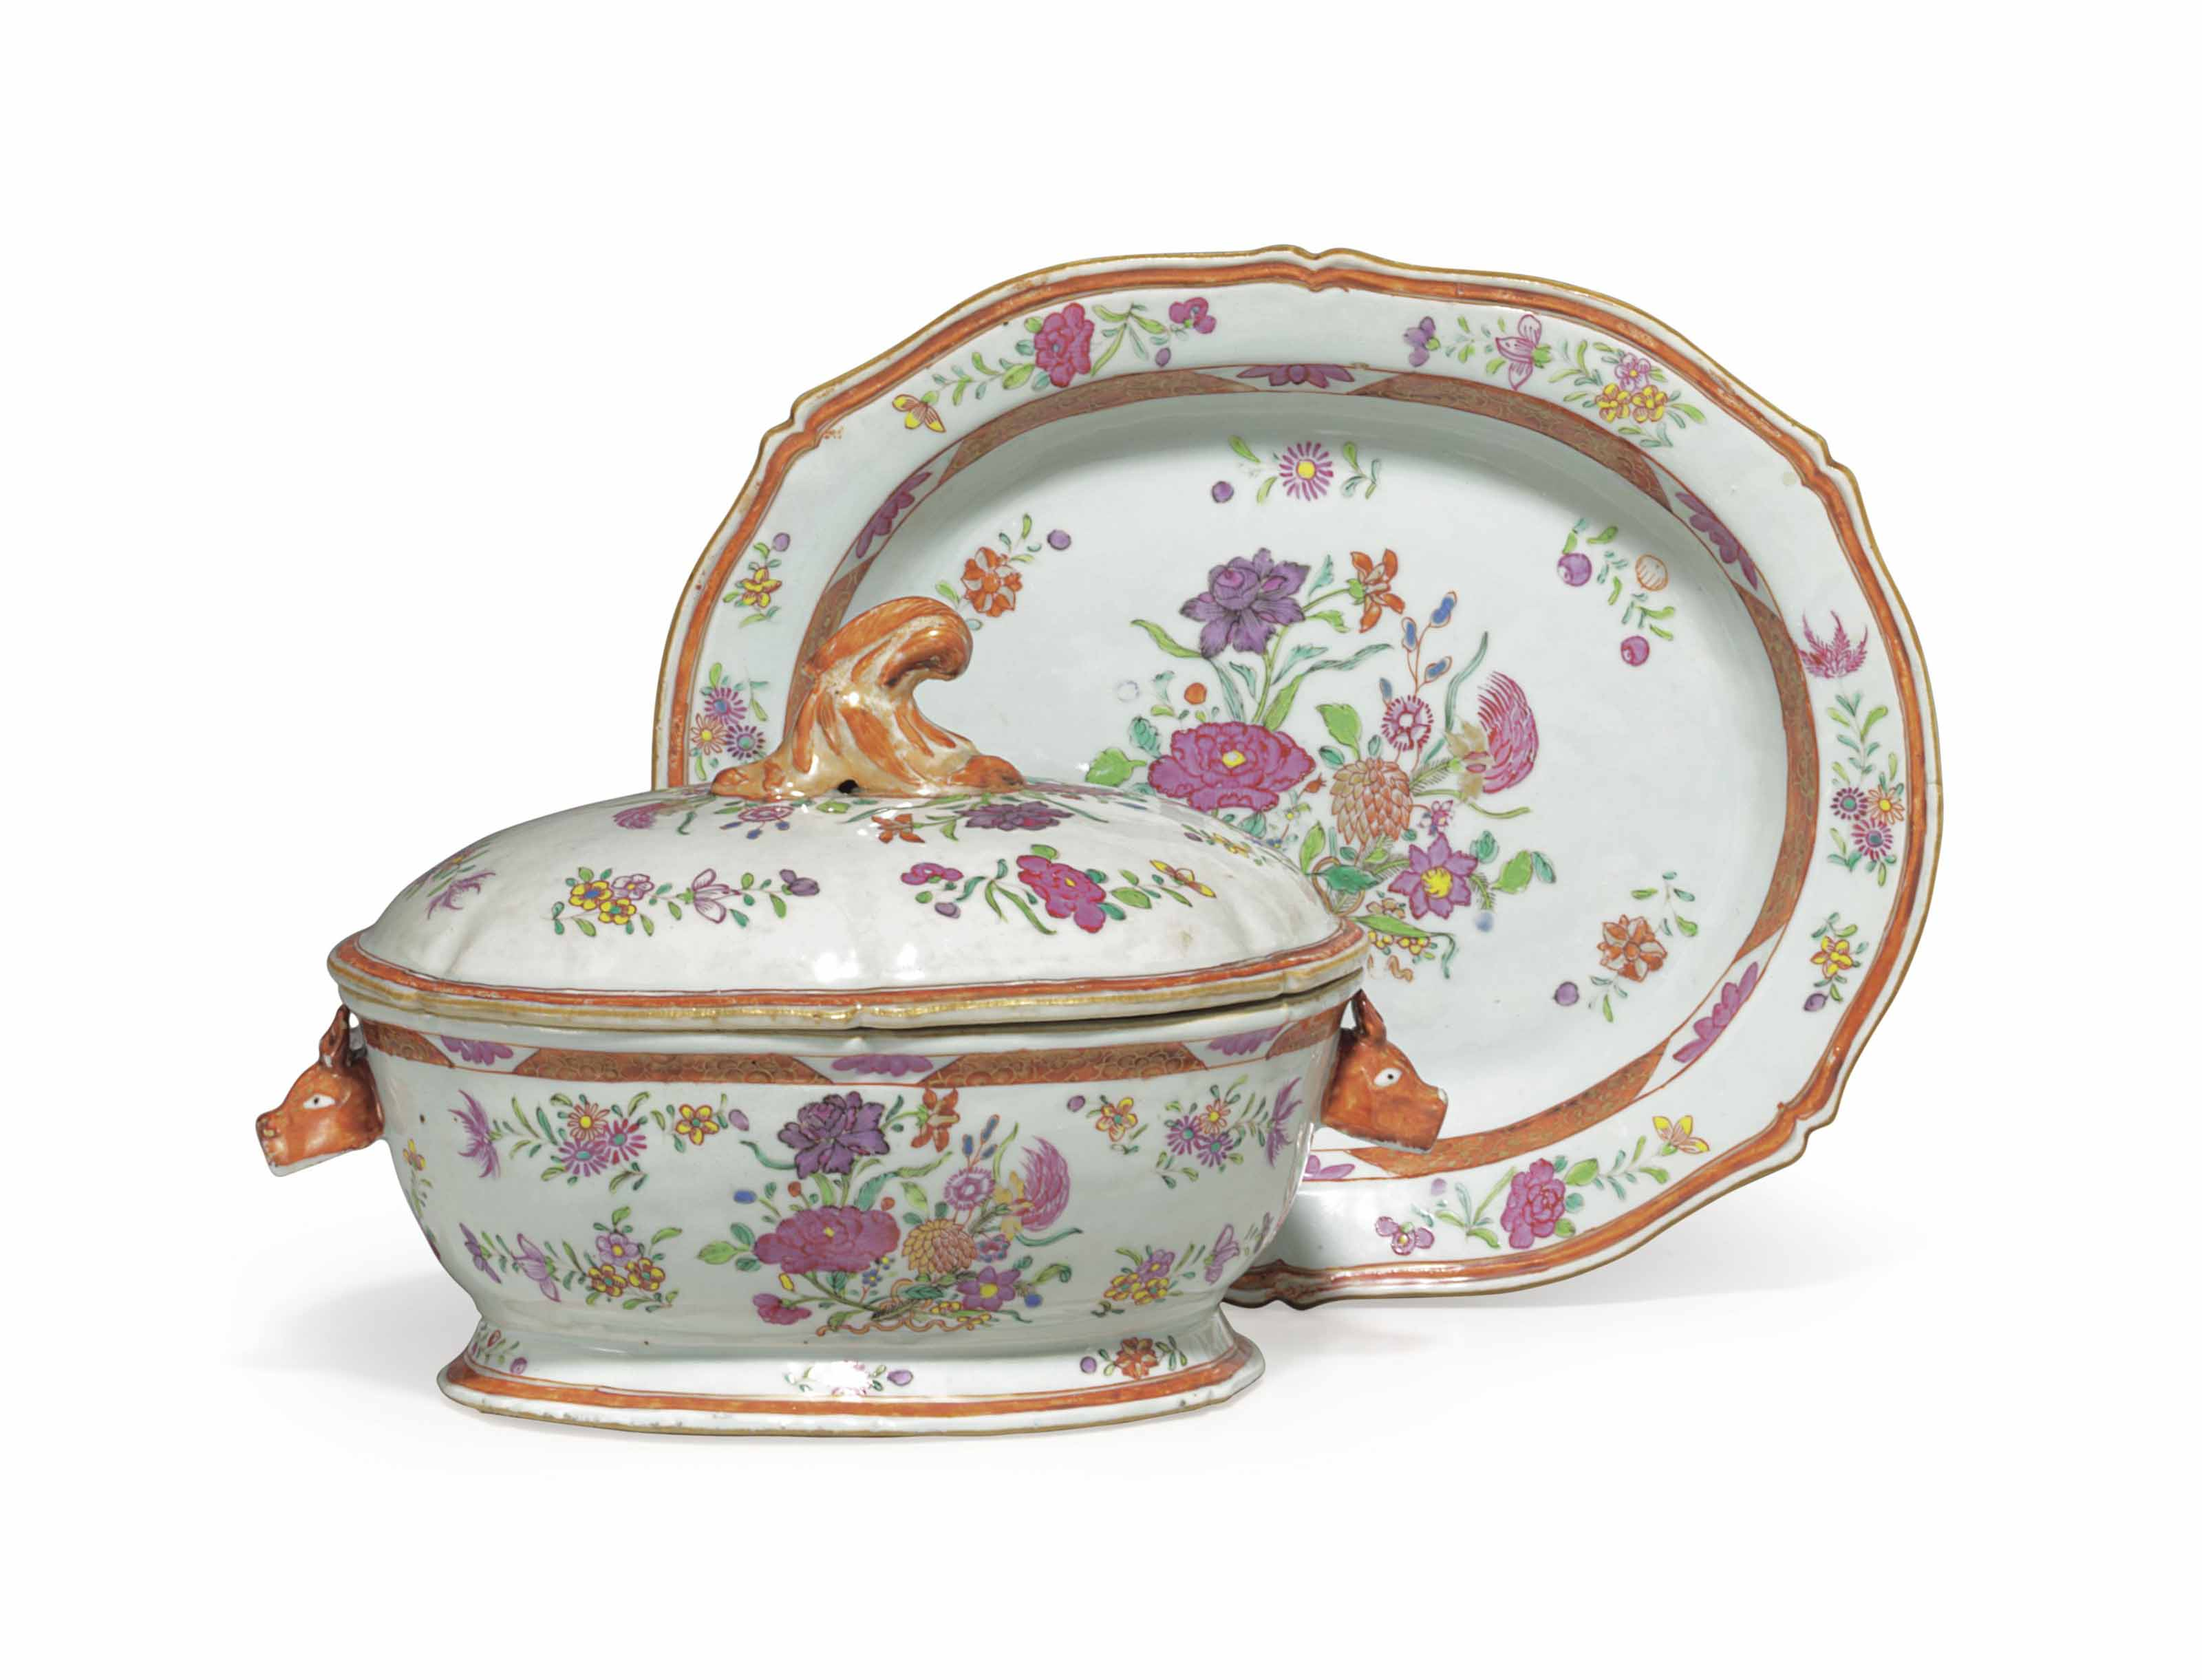 A SMALL CHINESE EXPORT PORCELAIN FAMILLE ROSE TUREEN, COVER AND STAND